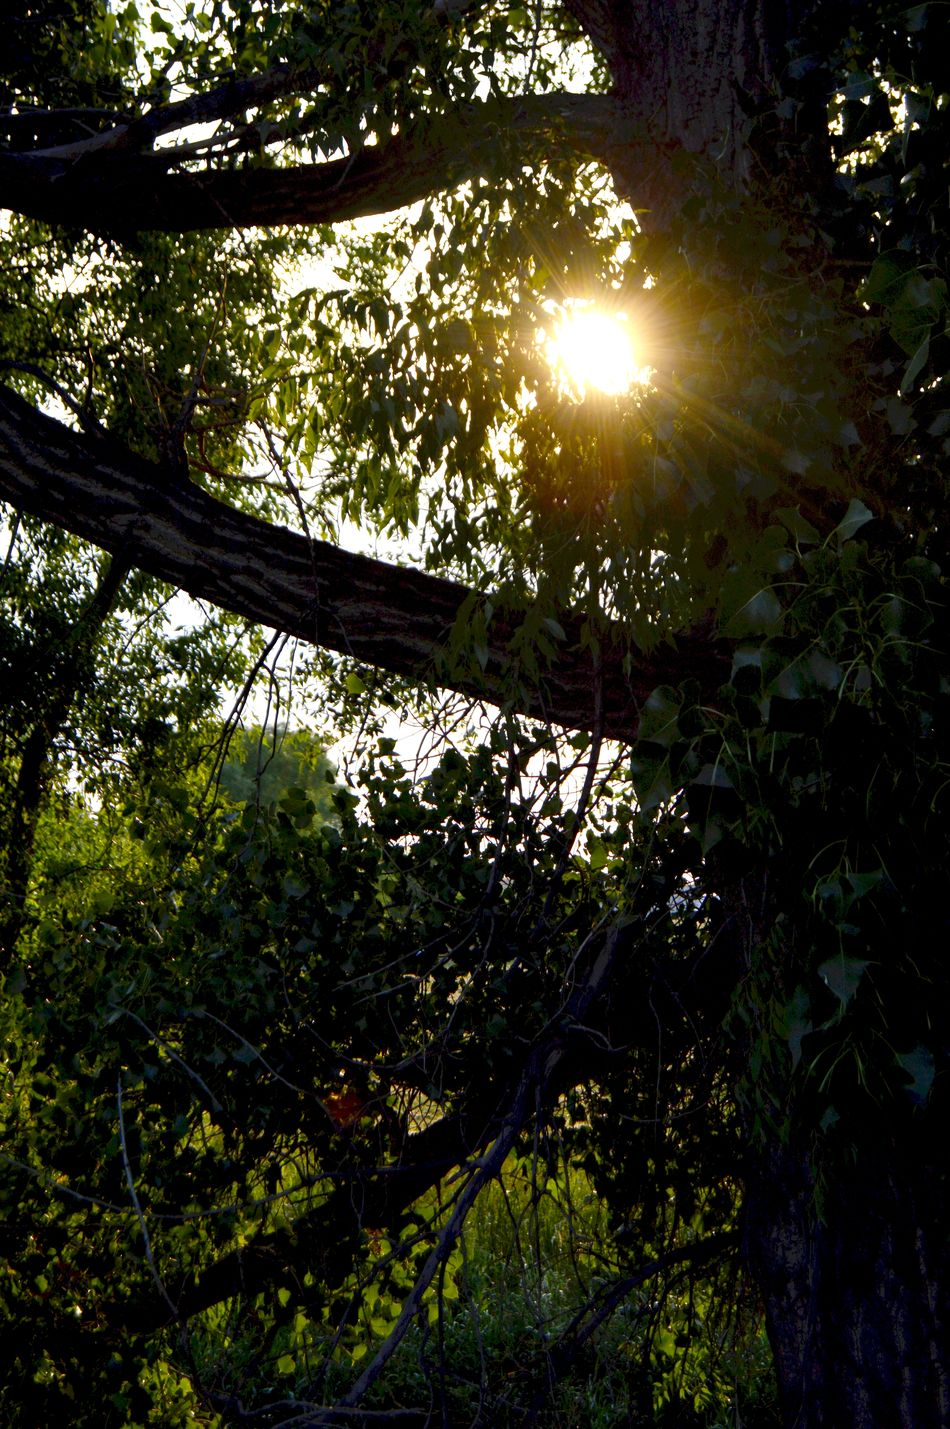 Sun shining through August Afternoon Beauty In Nature East Of Wyoming Women's Center Lusk Wyoming Green Color Grove Of Tree Along The Tracks Hot Summer Day Lush Foliage Trees Are Still Green